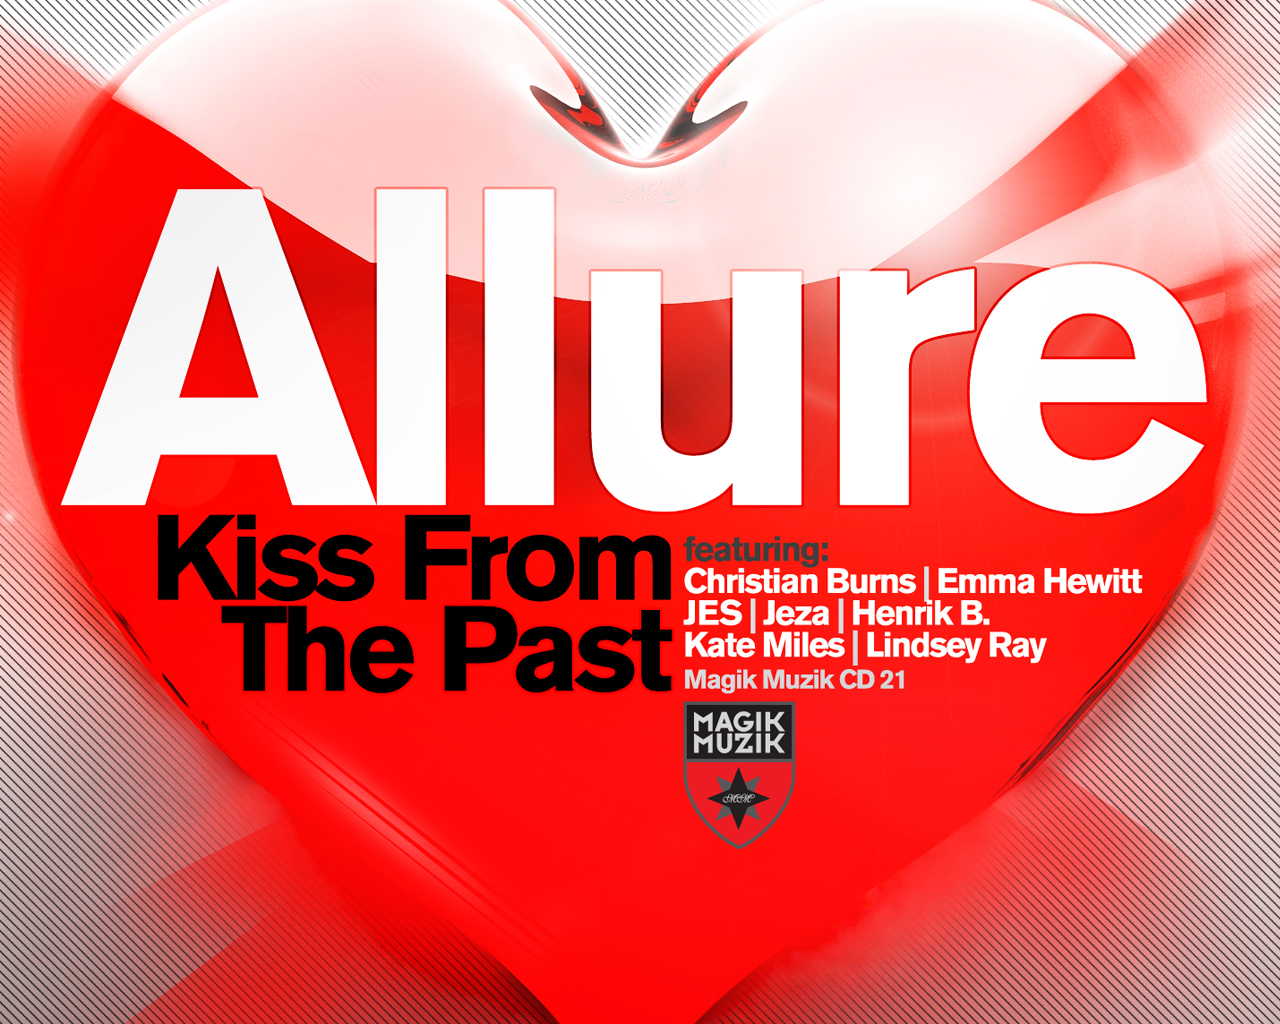 Tiesto – Allure – Kiss From The Past (2011) Limited Edition 3x Vinyl Pack